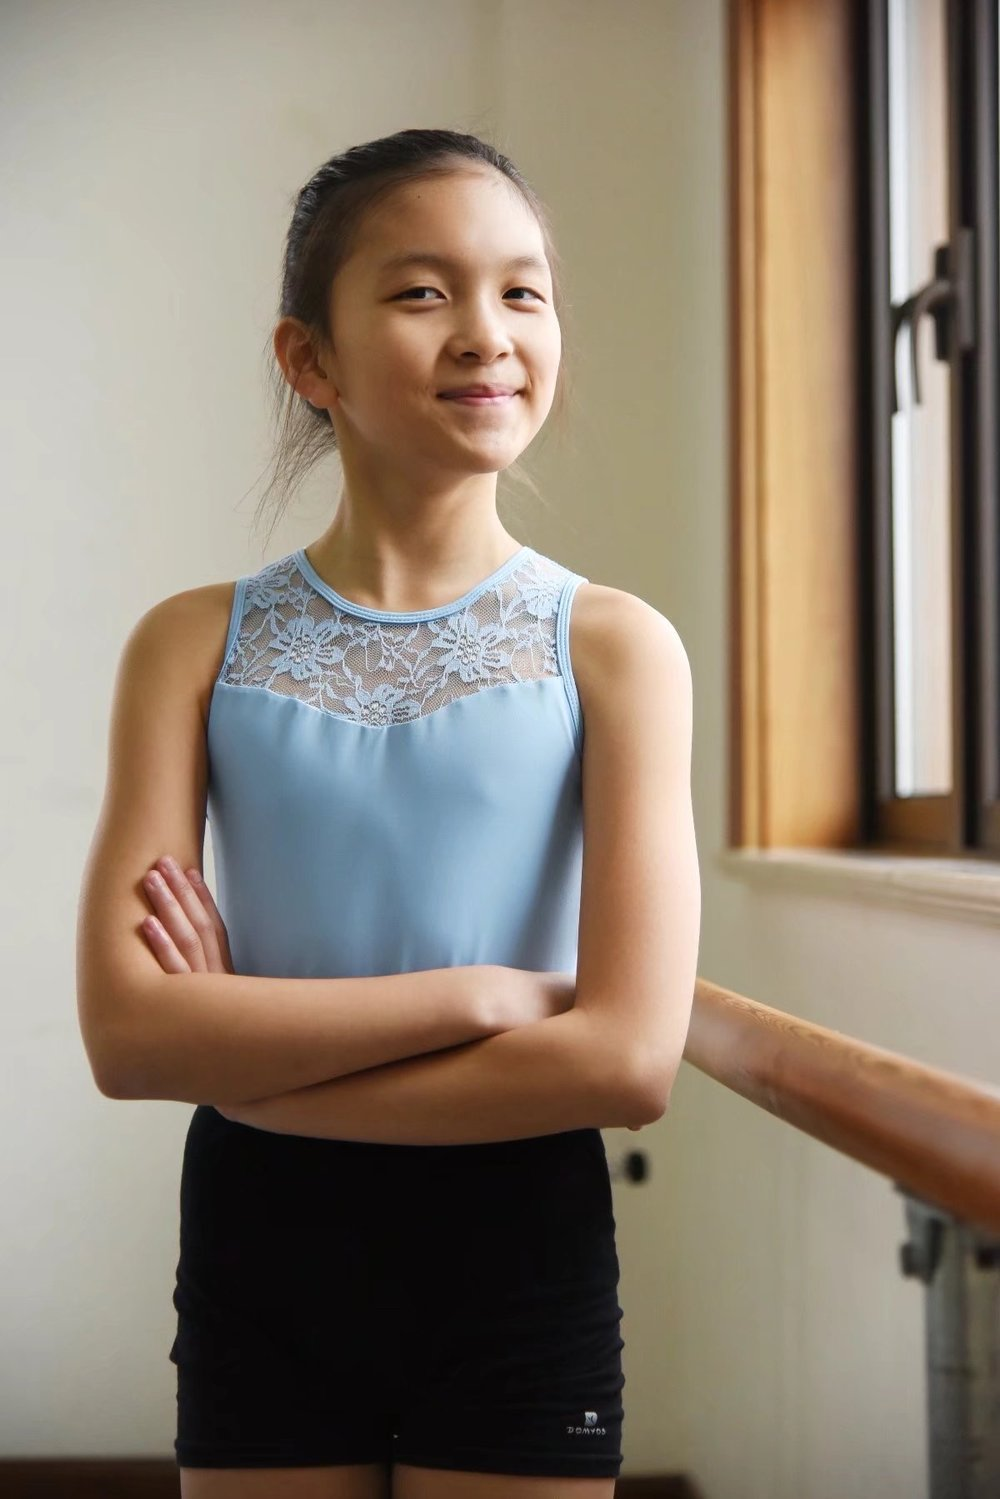 Samantha   Samantha started dancing when she was 4 years old. After she joined DWS, she is more passionate about dance than ever - it has become a part of who she is. She can't wait to try out different dance styles. Apart from dance, she enjoys other performing arts.